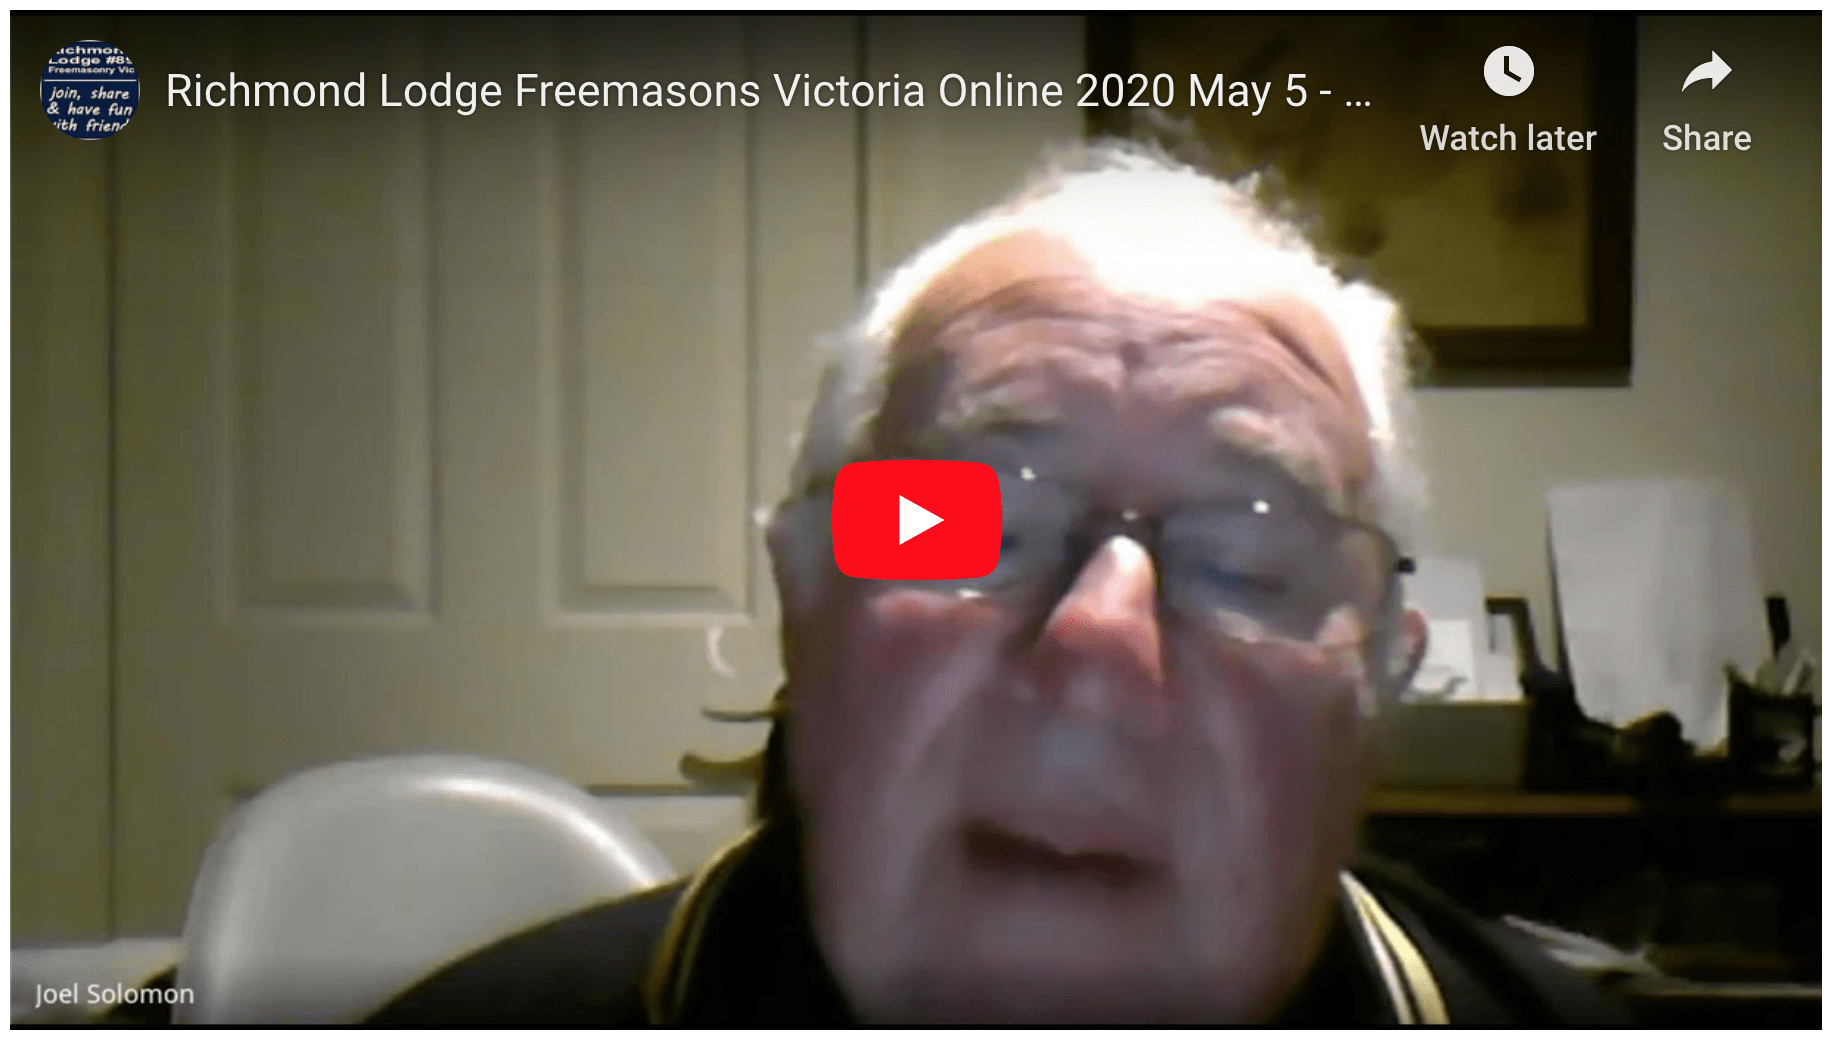 Richmond Lodge Freemasons Victoria Online 2020 May 5 - how to know a Freemason